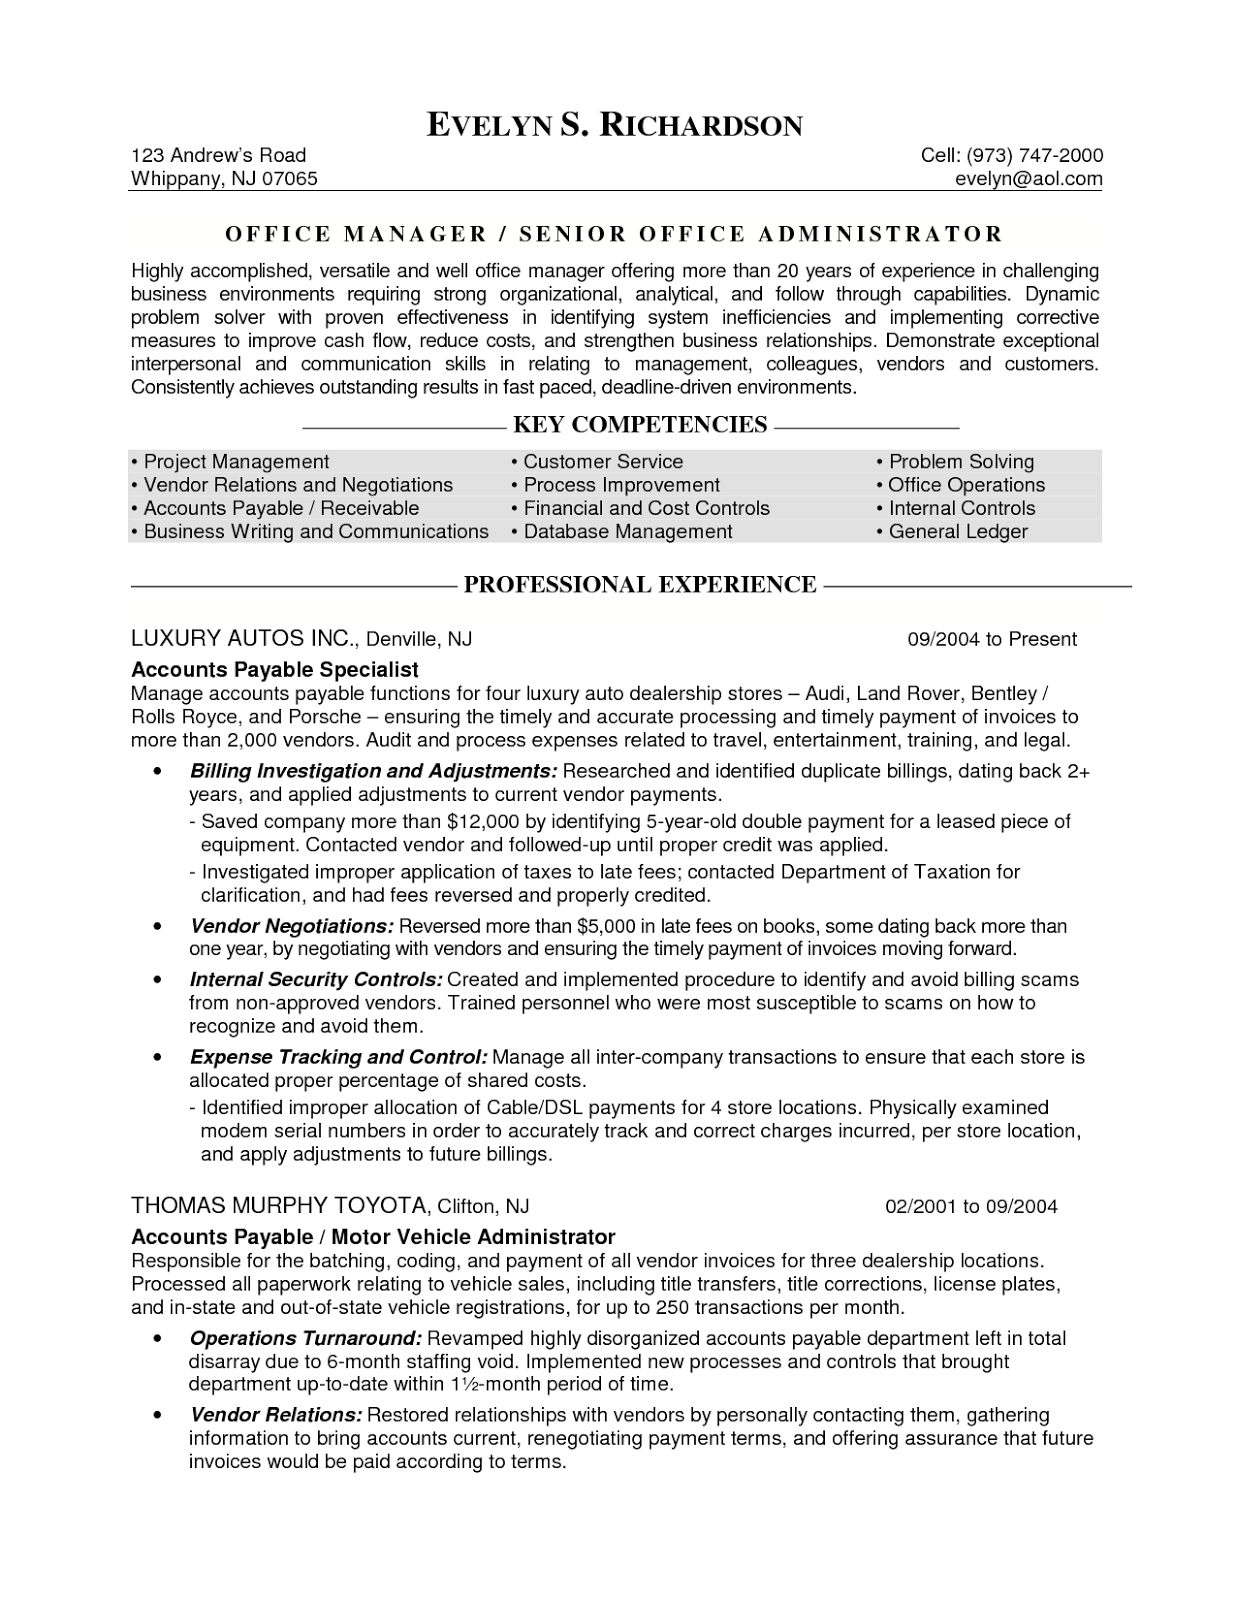 Office Admin Resume Samples Sample Resumes